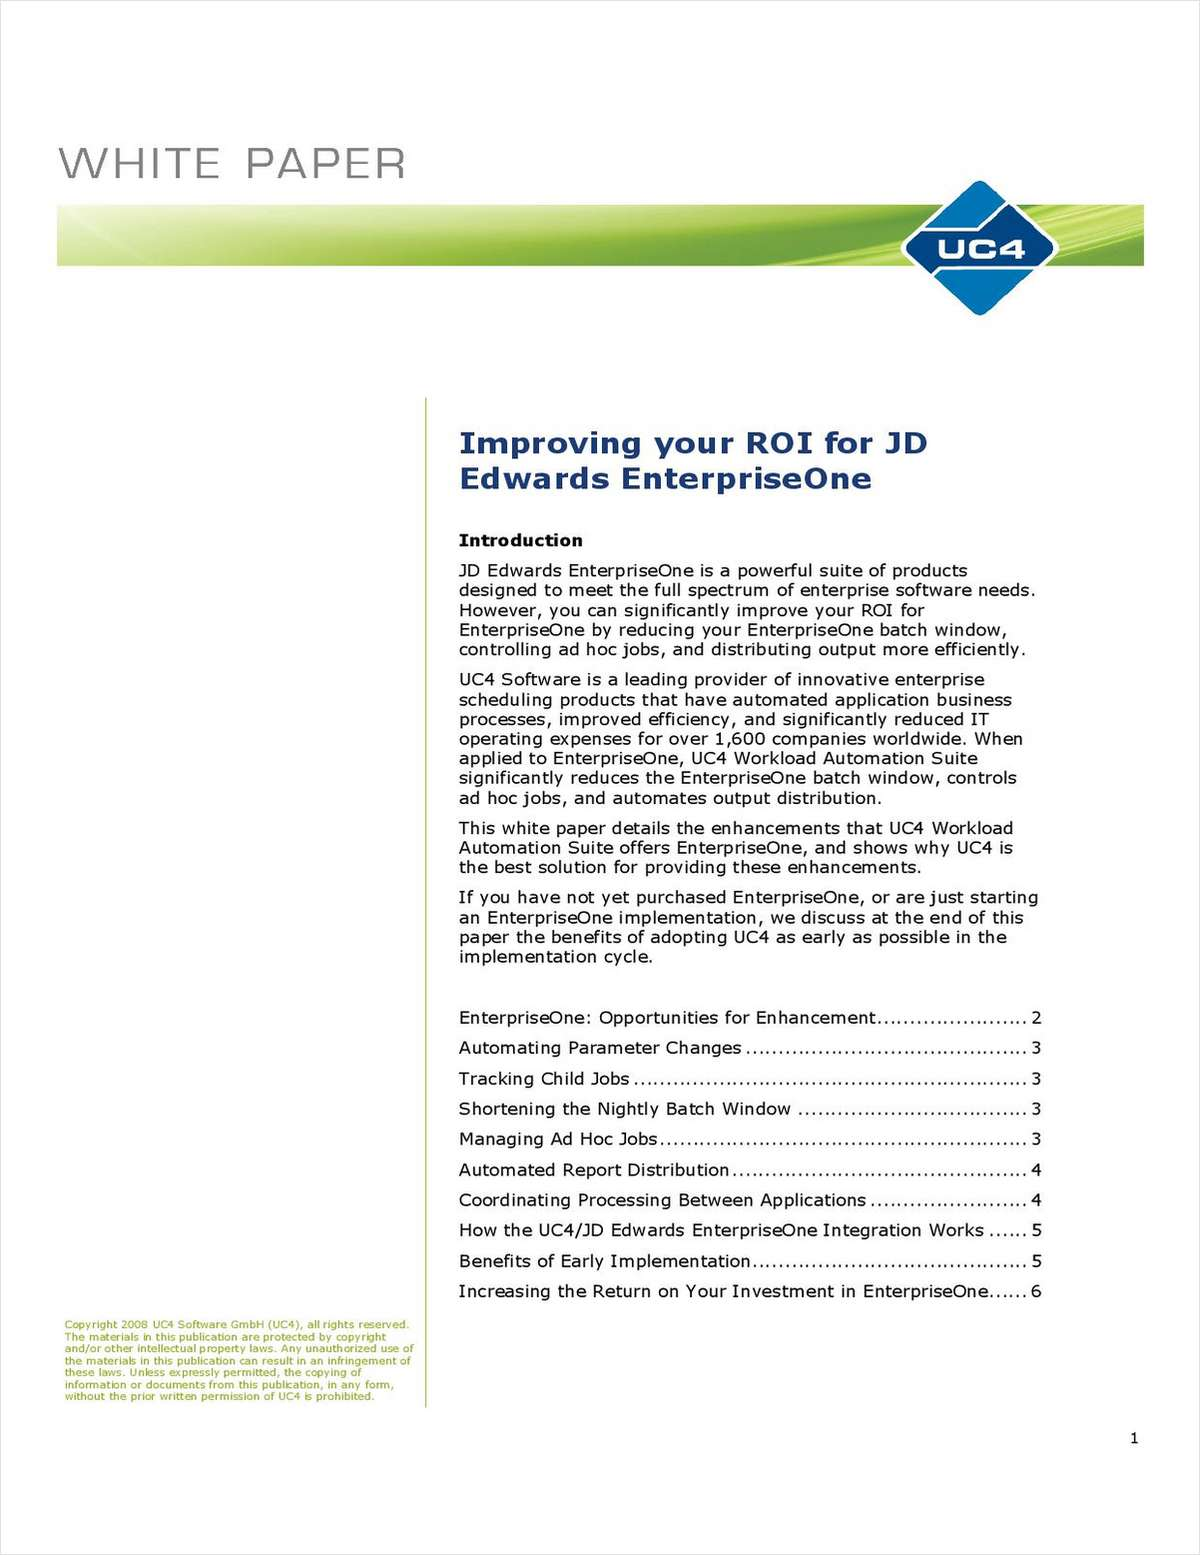 Improve your ROI for JD Edwards EnterpriseOne